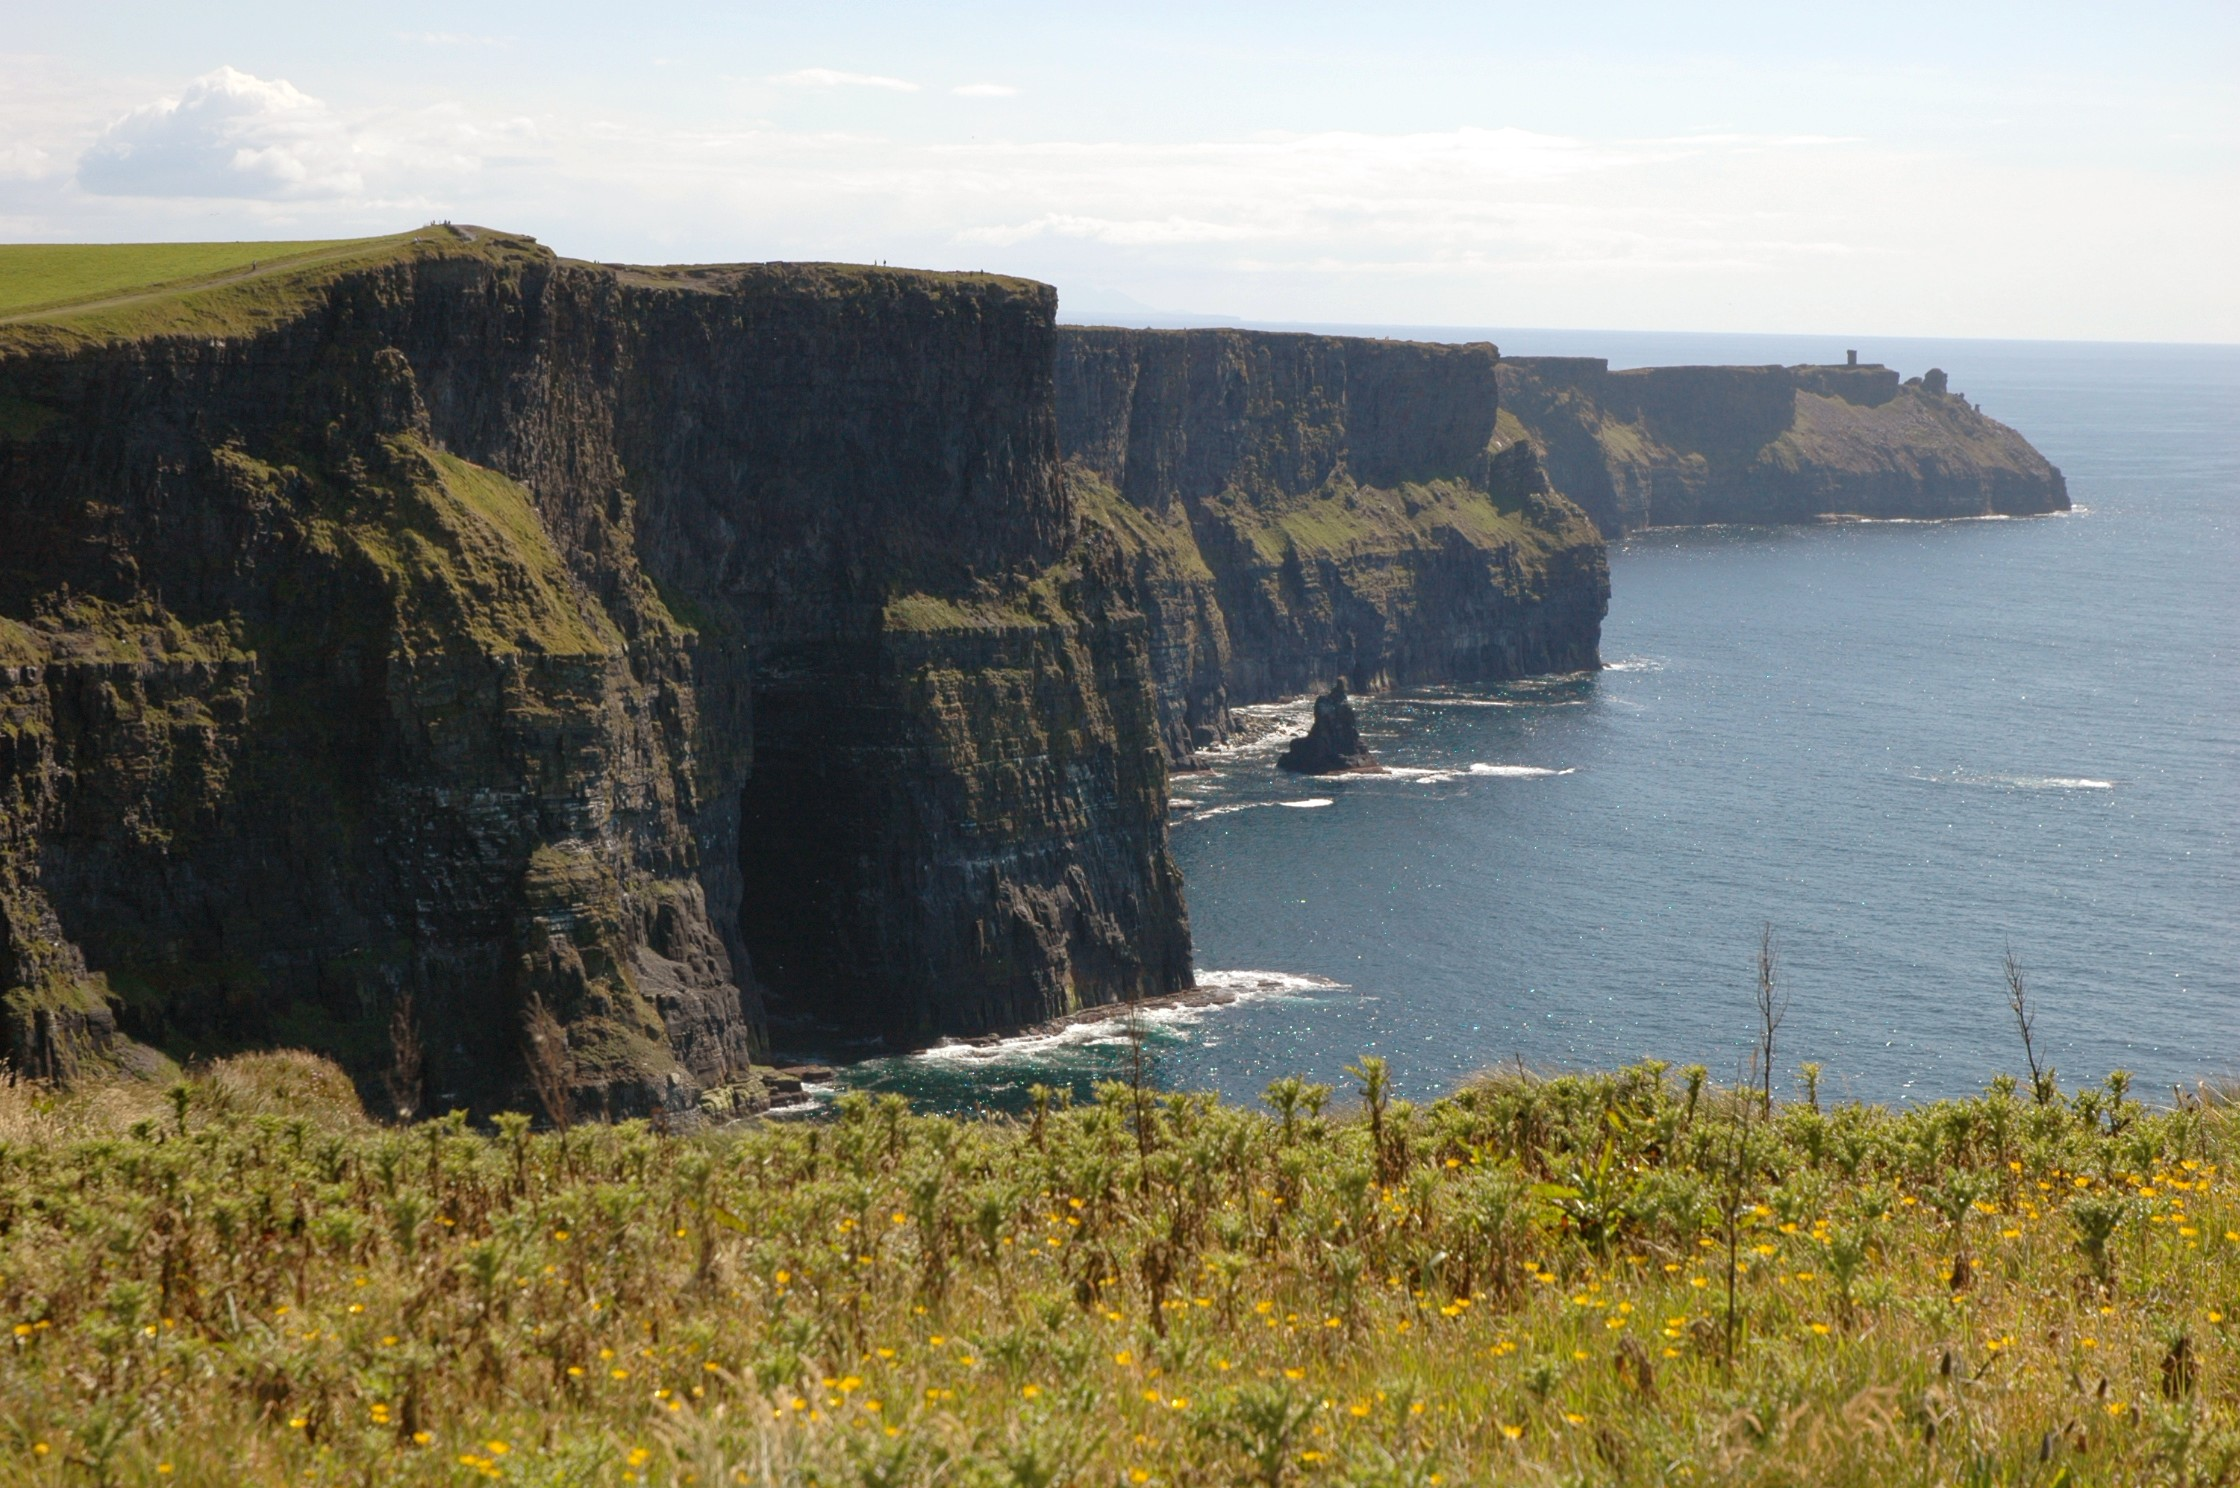 What are the must sees of the world askreddit - Cliffs of moher pictures ...